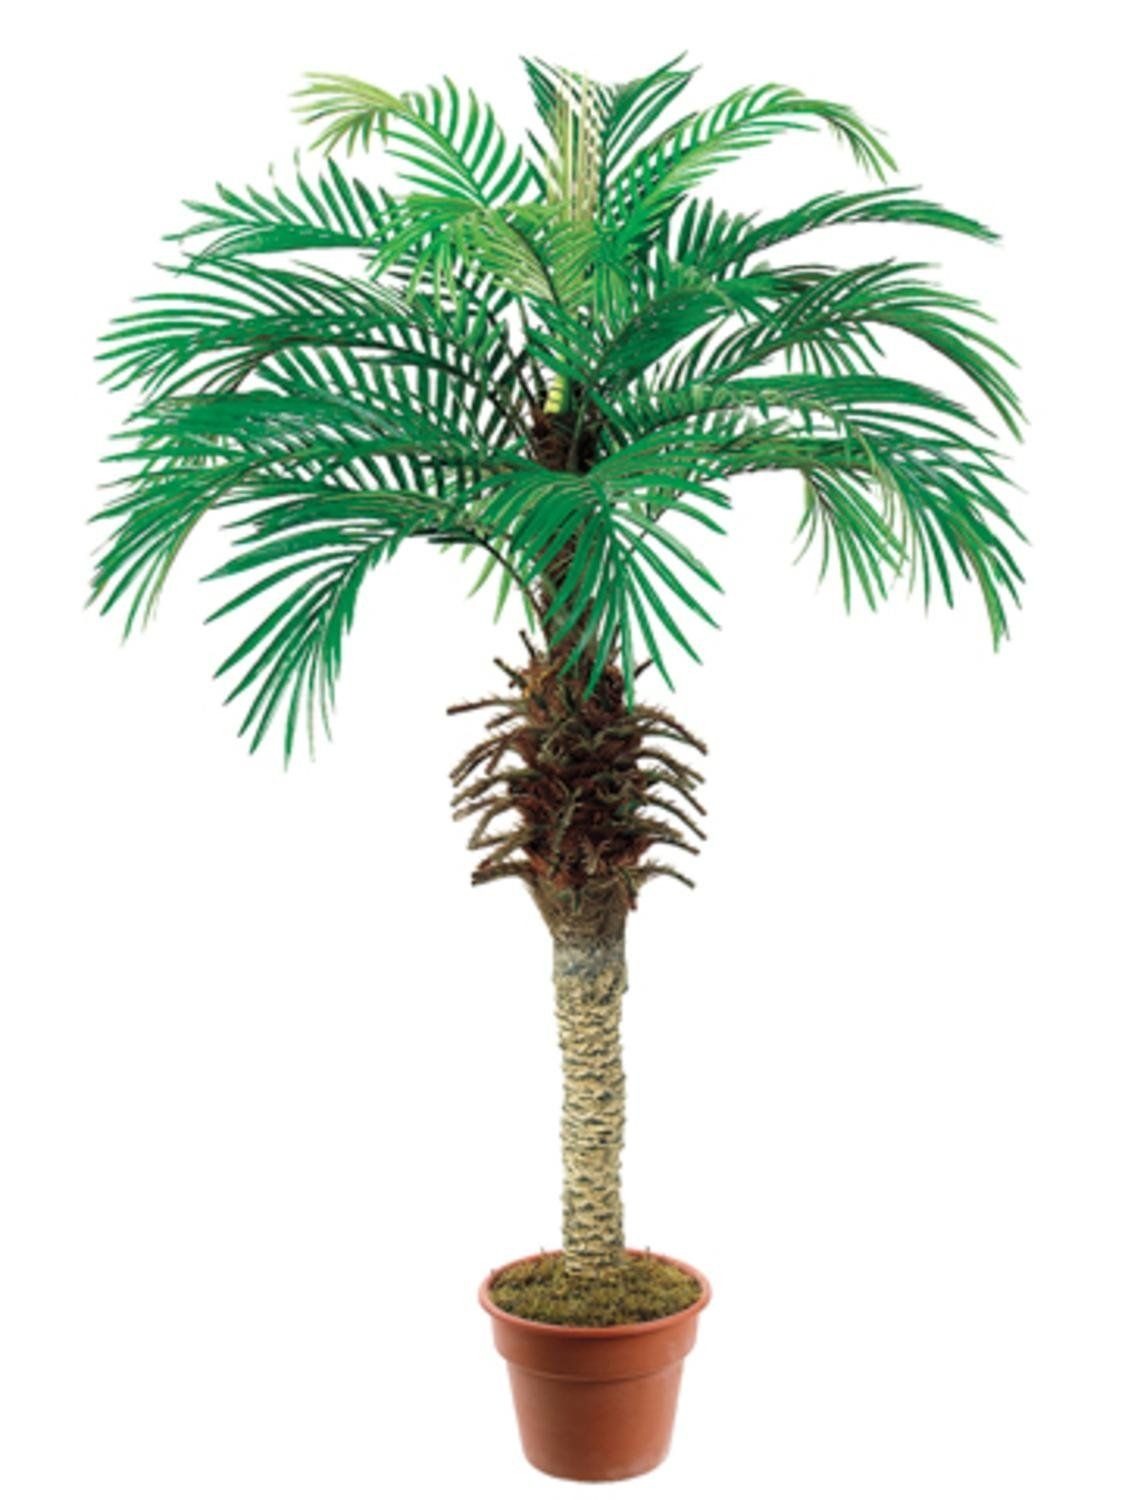 Pack of 2 Artificial Decorative Phoenix Silk Palm Trees 4'